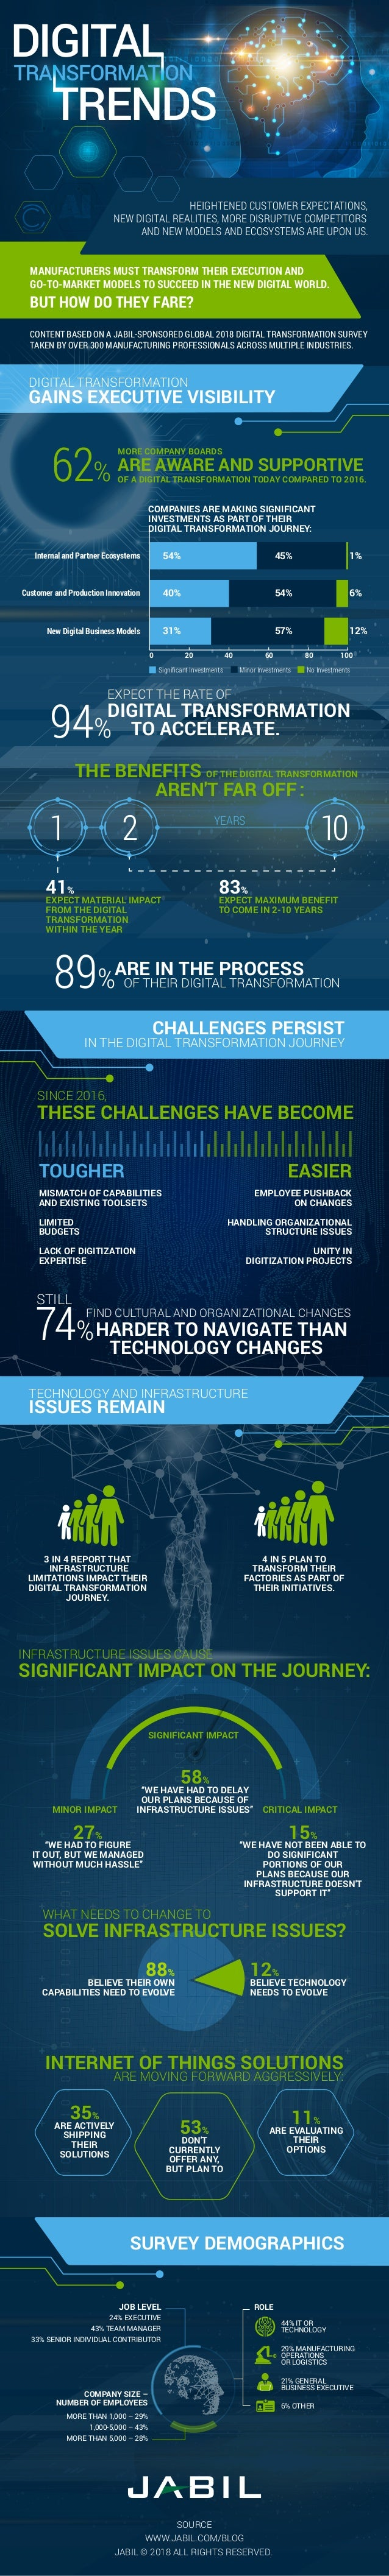 MANUFACTURERS MUST TRANSFORM THEIR EXECUTION AND GO-TO-MARKET MODELS TO SUCCEED IN THE NEW DIGITAL WORLD. BUT HOW DO THEY ...